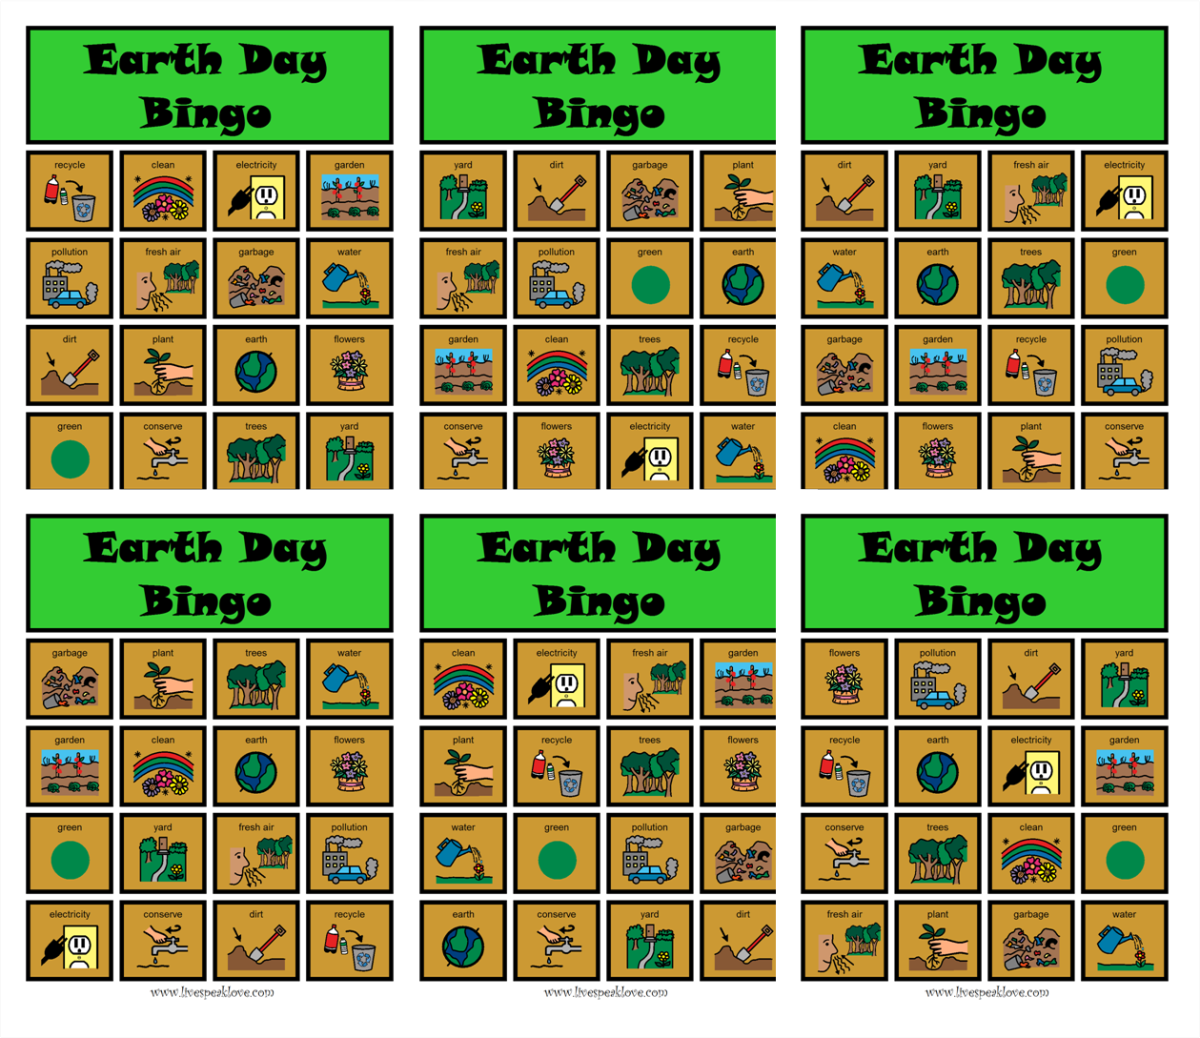 Earth Day Bingo Boards